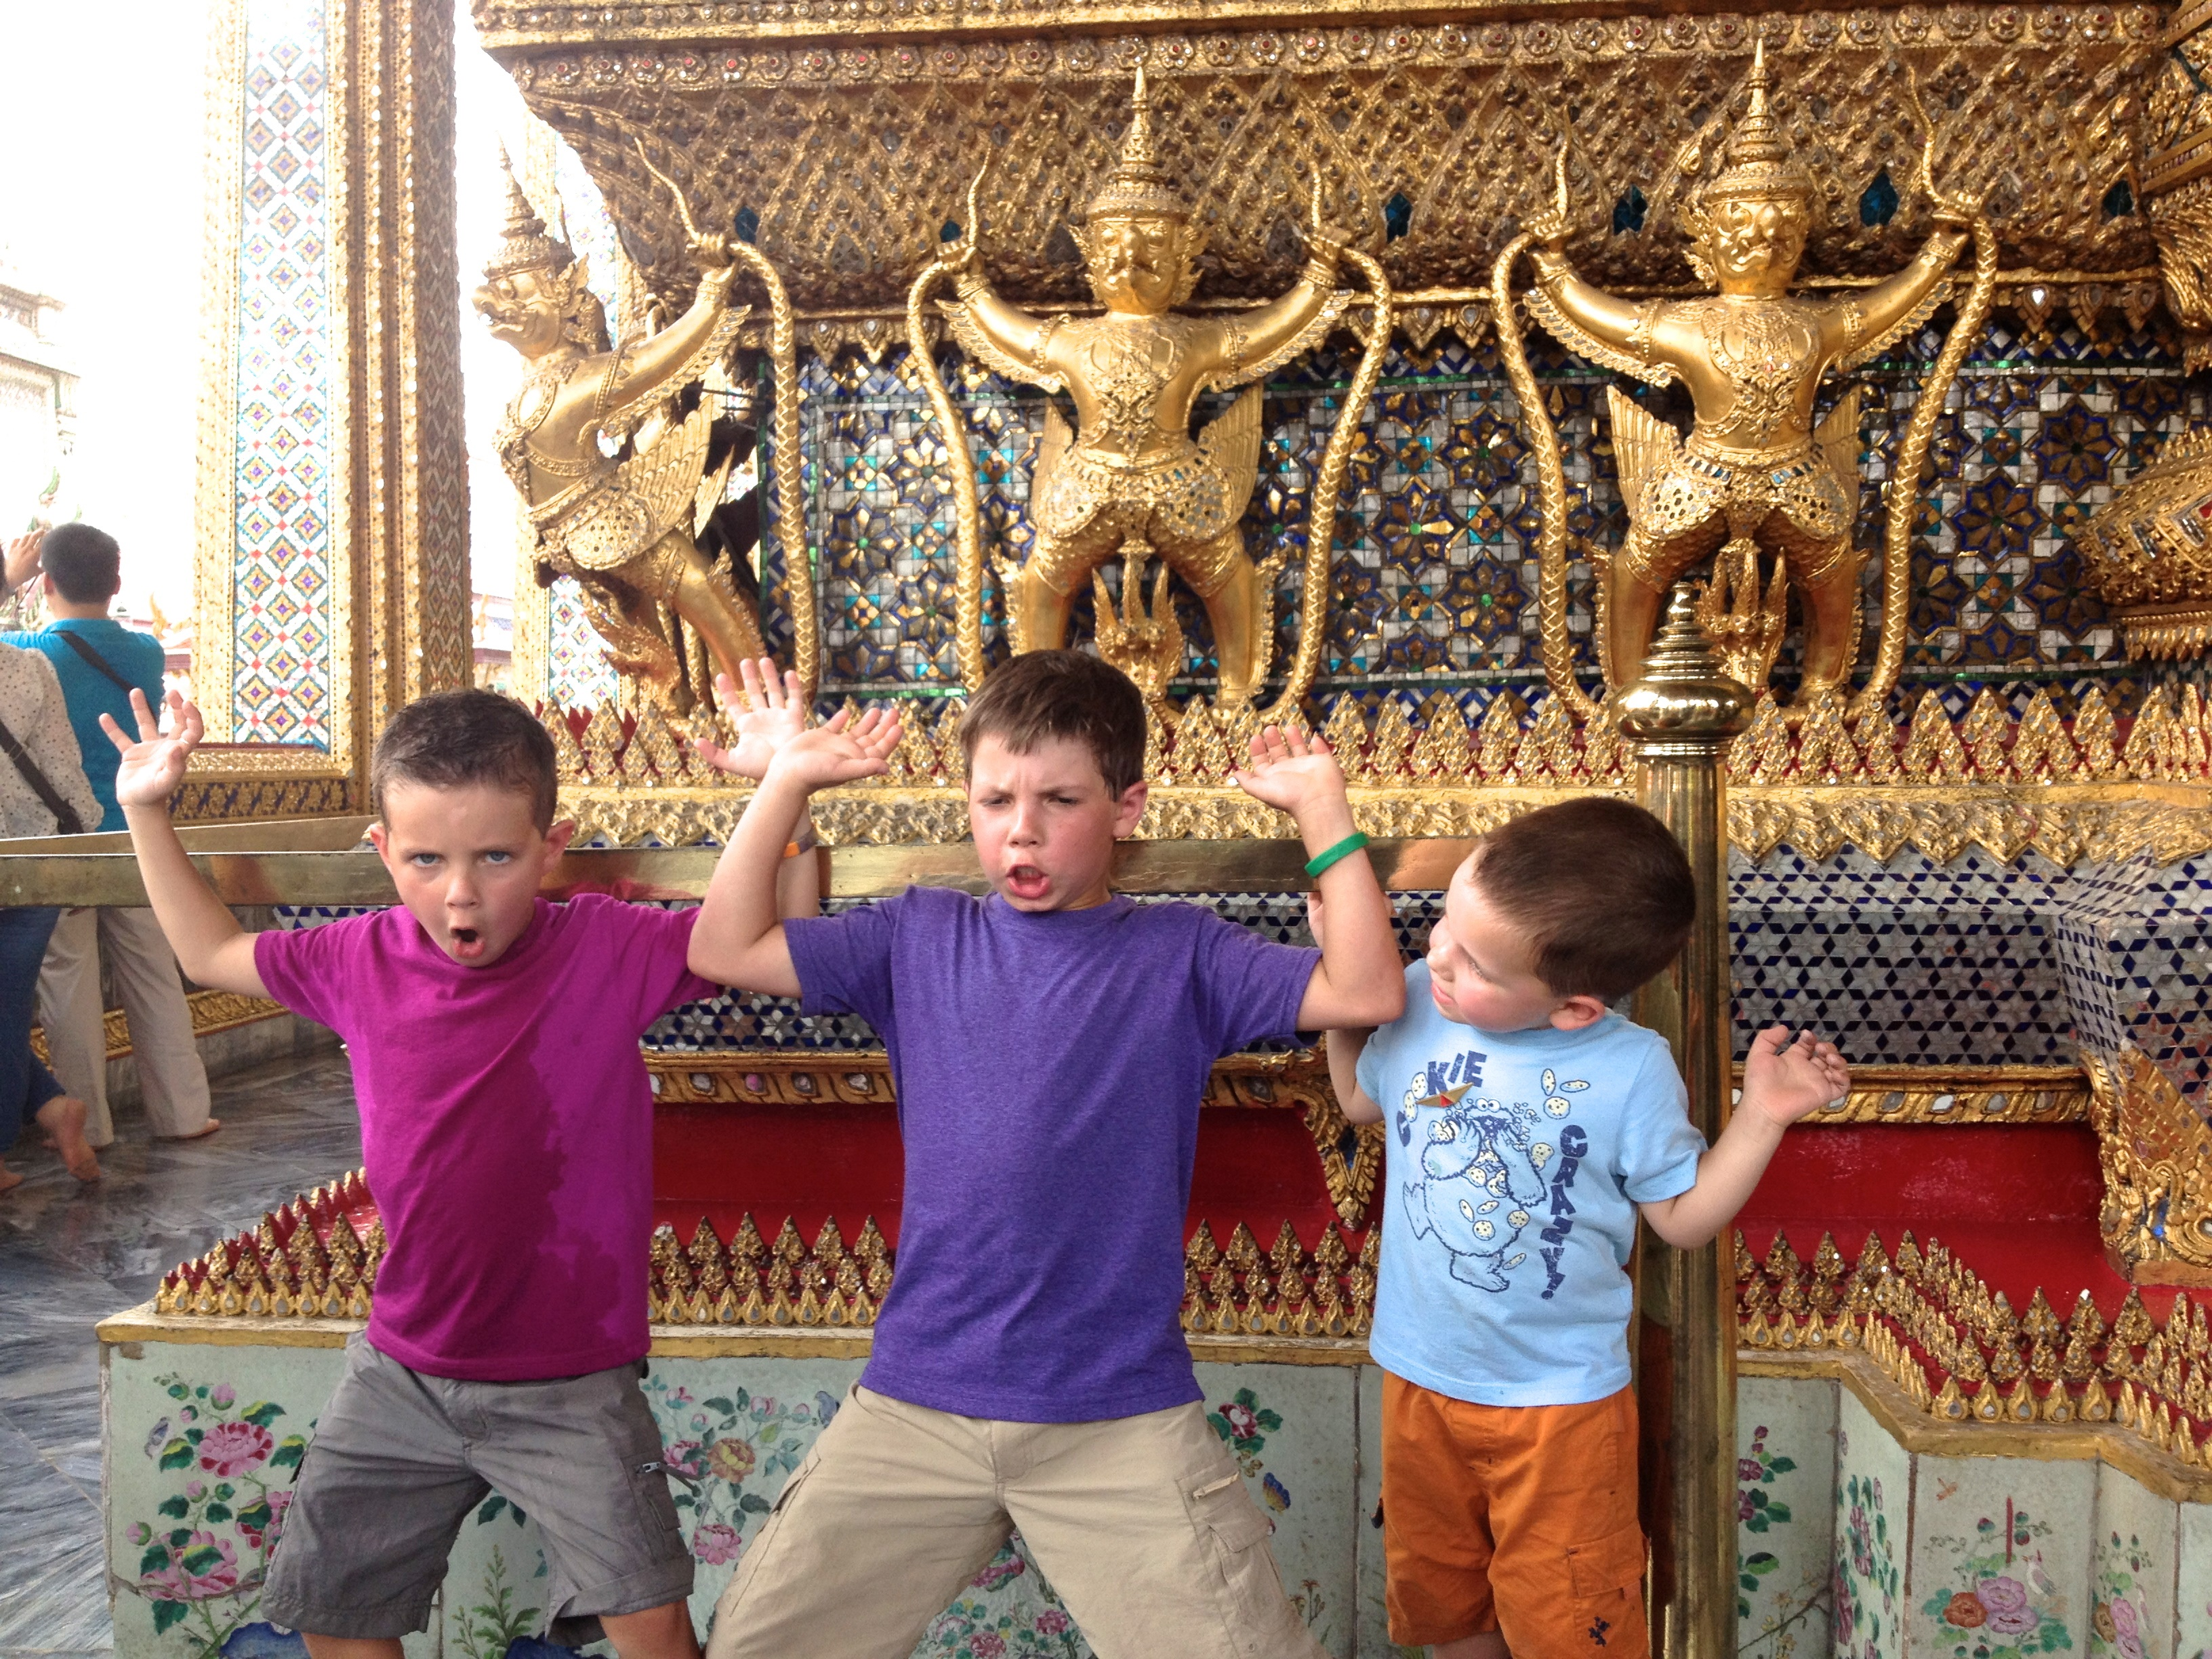 Columnist Kat Dayton's three sons at the  Grand Palace in Bangkok, Thailand, June 2013 | Photo by Kat Dayton, St. George News